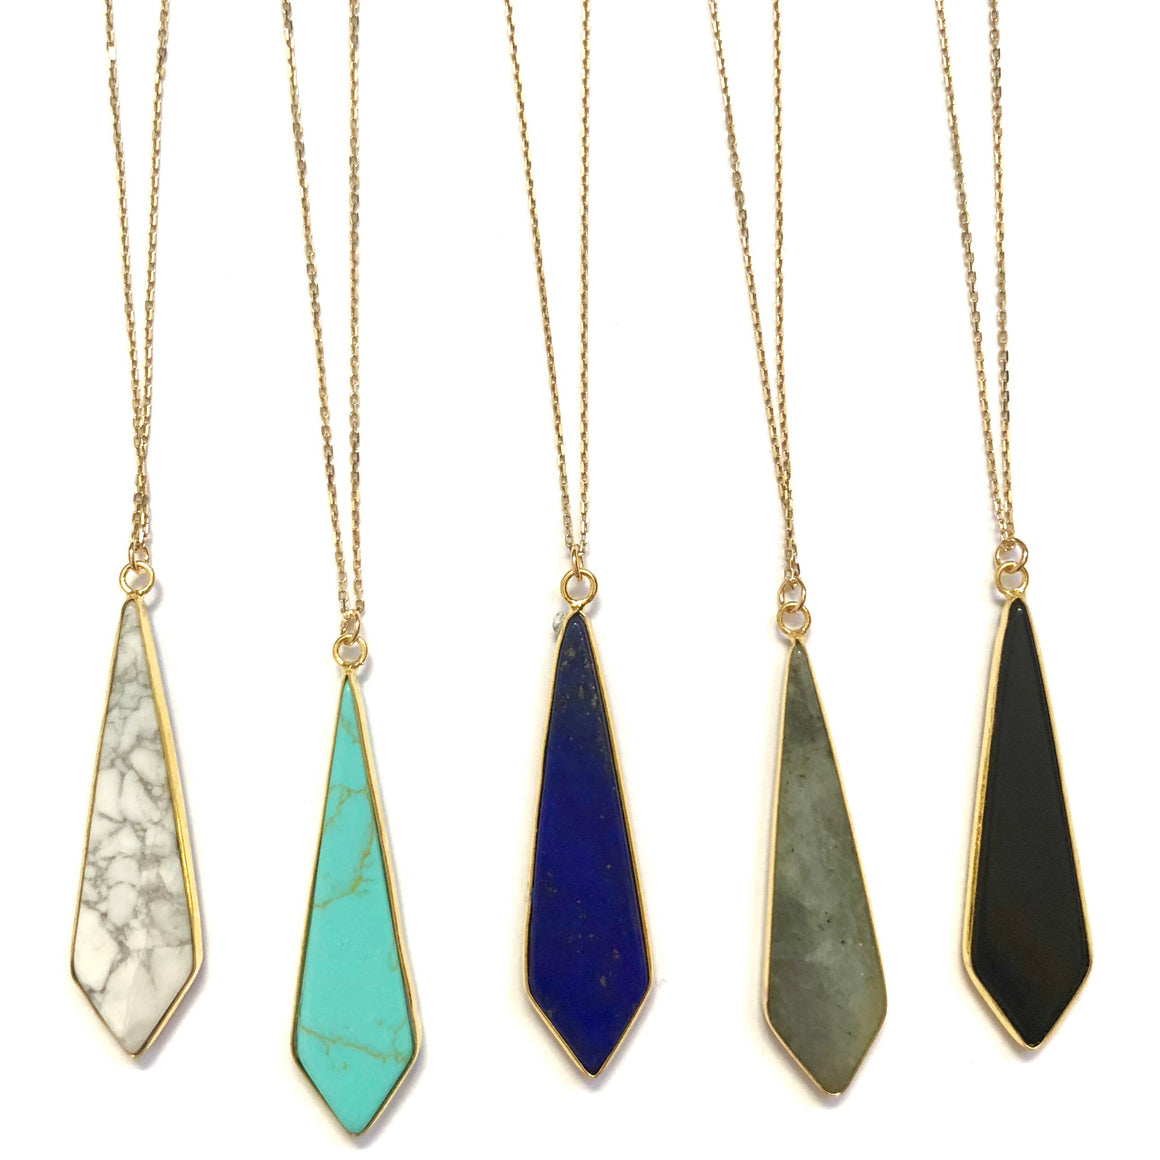 Geo Pendant Necklaces - Nikki Smith Designs